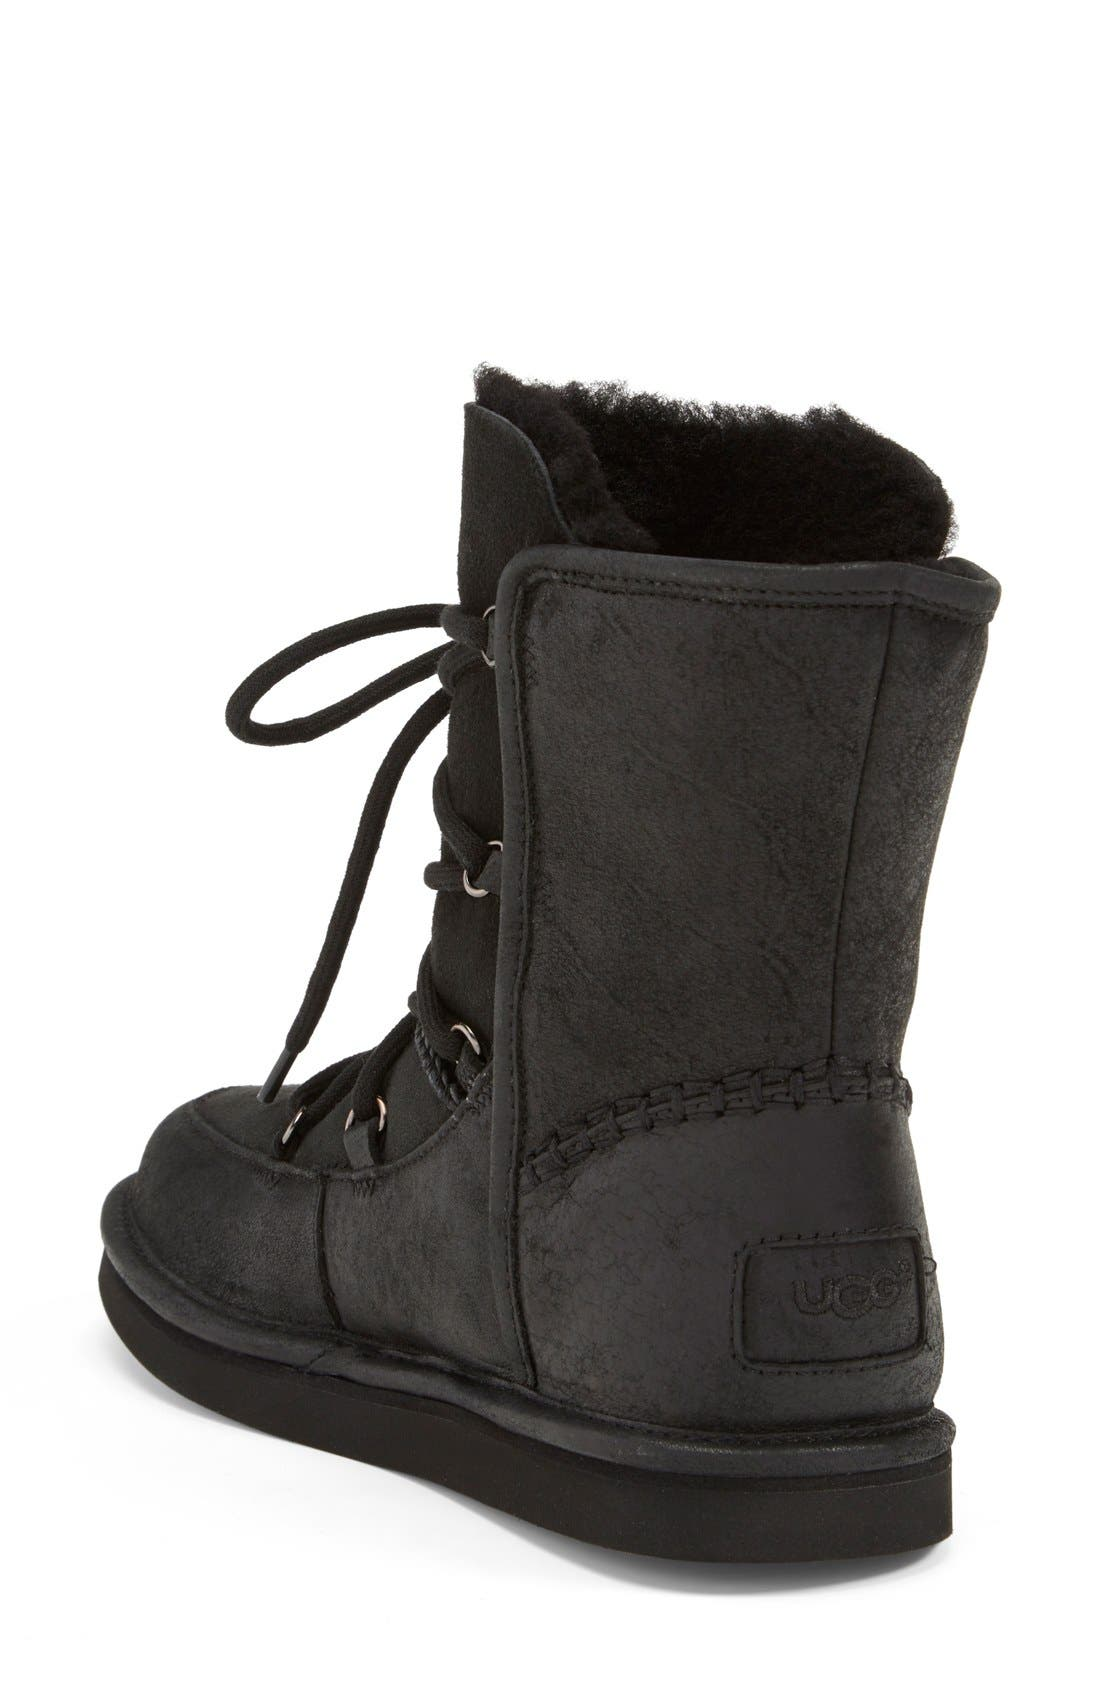 UGG<SUP>®</SUP>, Lodge Water Resistant Lace-Up Boot, Alternate thumbnail 3, color, 001